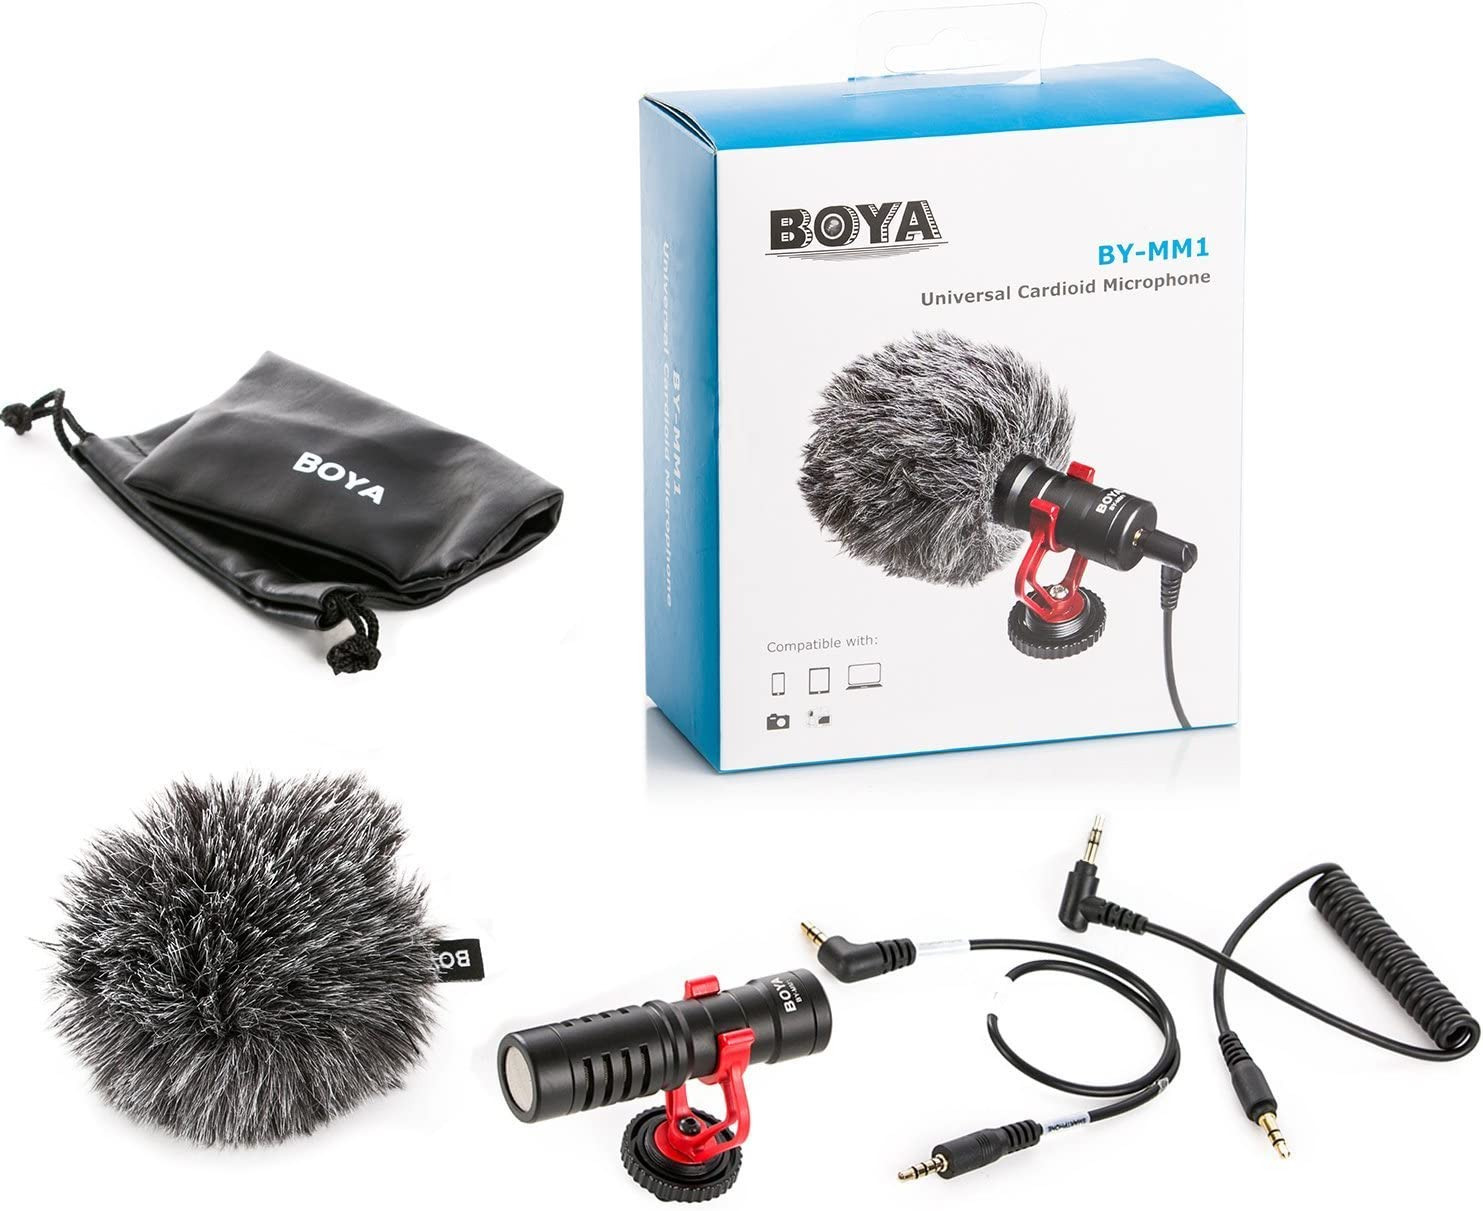 BOYA by-MM1 Shotgun Video Microphone with Shock Mount Deadcat Windscreen Case Compatible with iPhone//Andoid Smartphones Canon EOS//Nikon DSLR Cameras Camcorders for Live Streaming Audio Recording